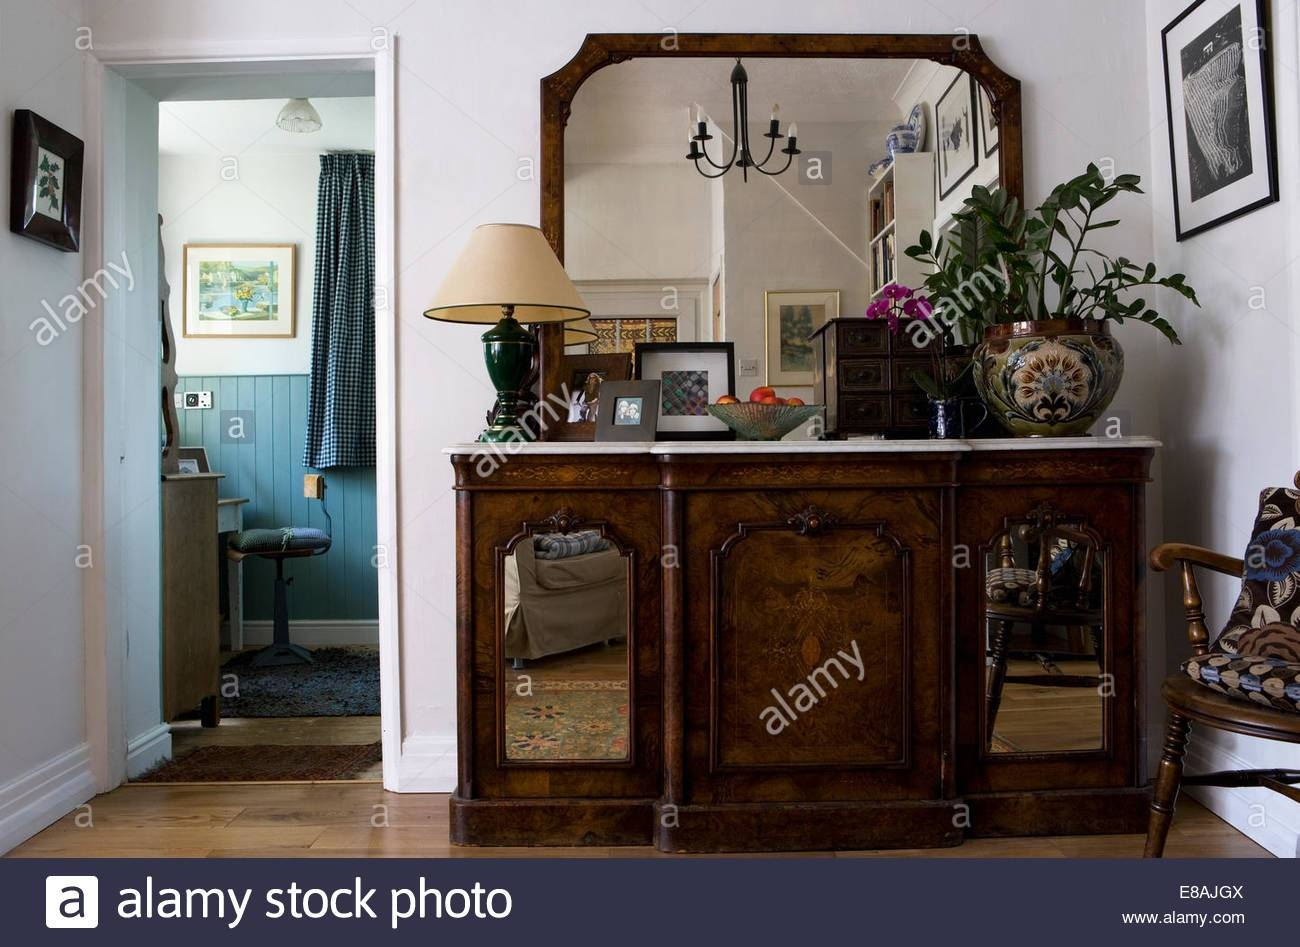 Large Mirror Above Marble-Topped Antique Sideboard With Mirrored regarding Small Mirrored Sideboards (Image 12 of 30)